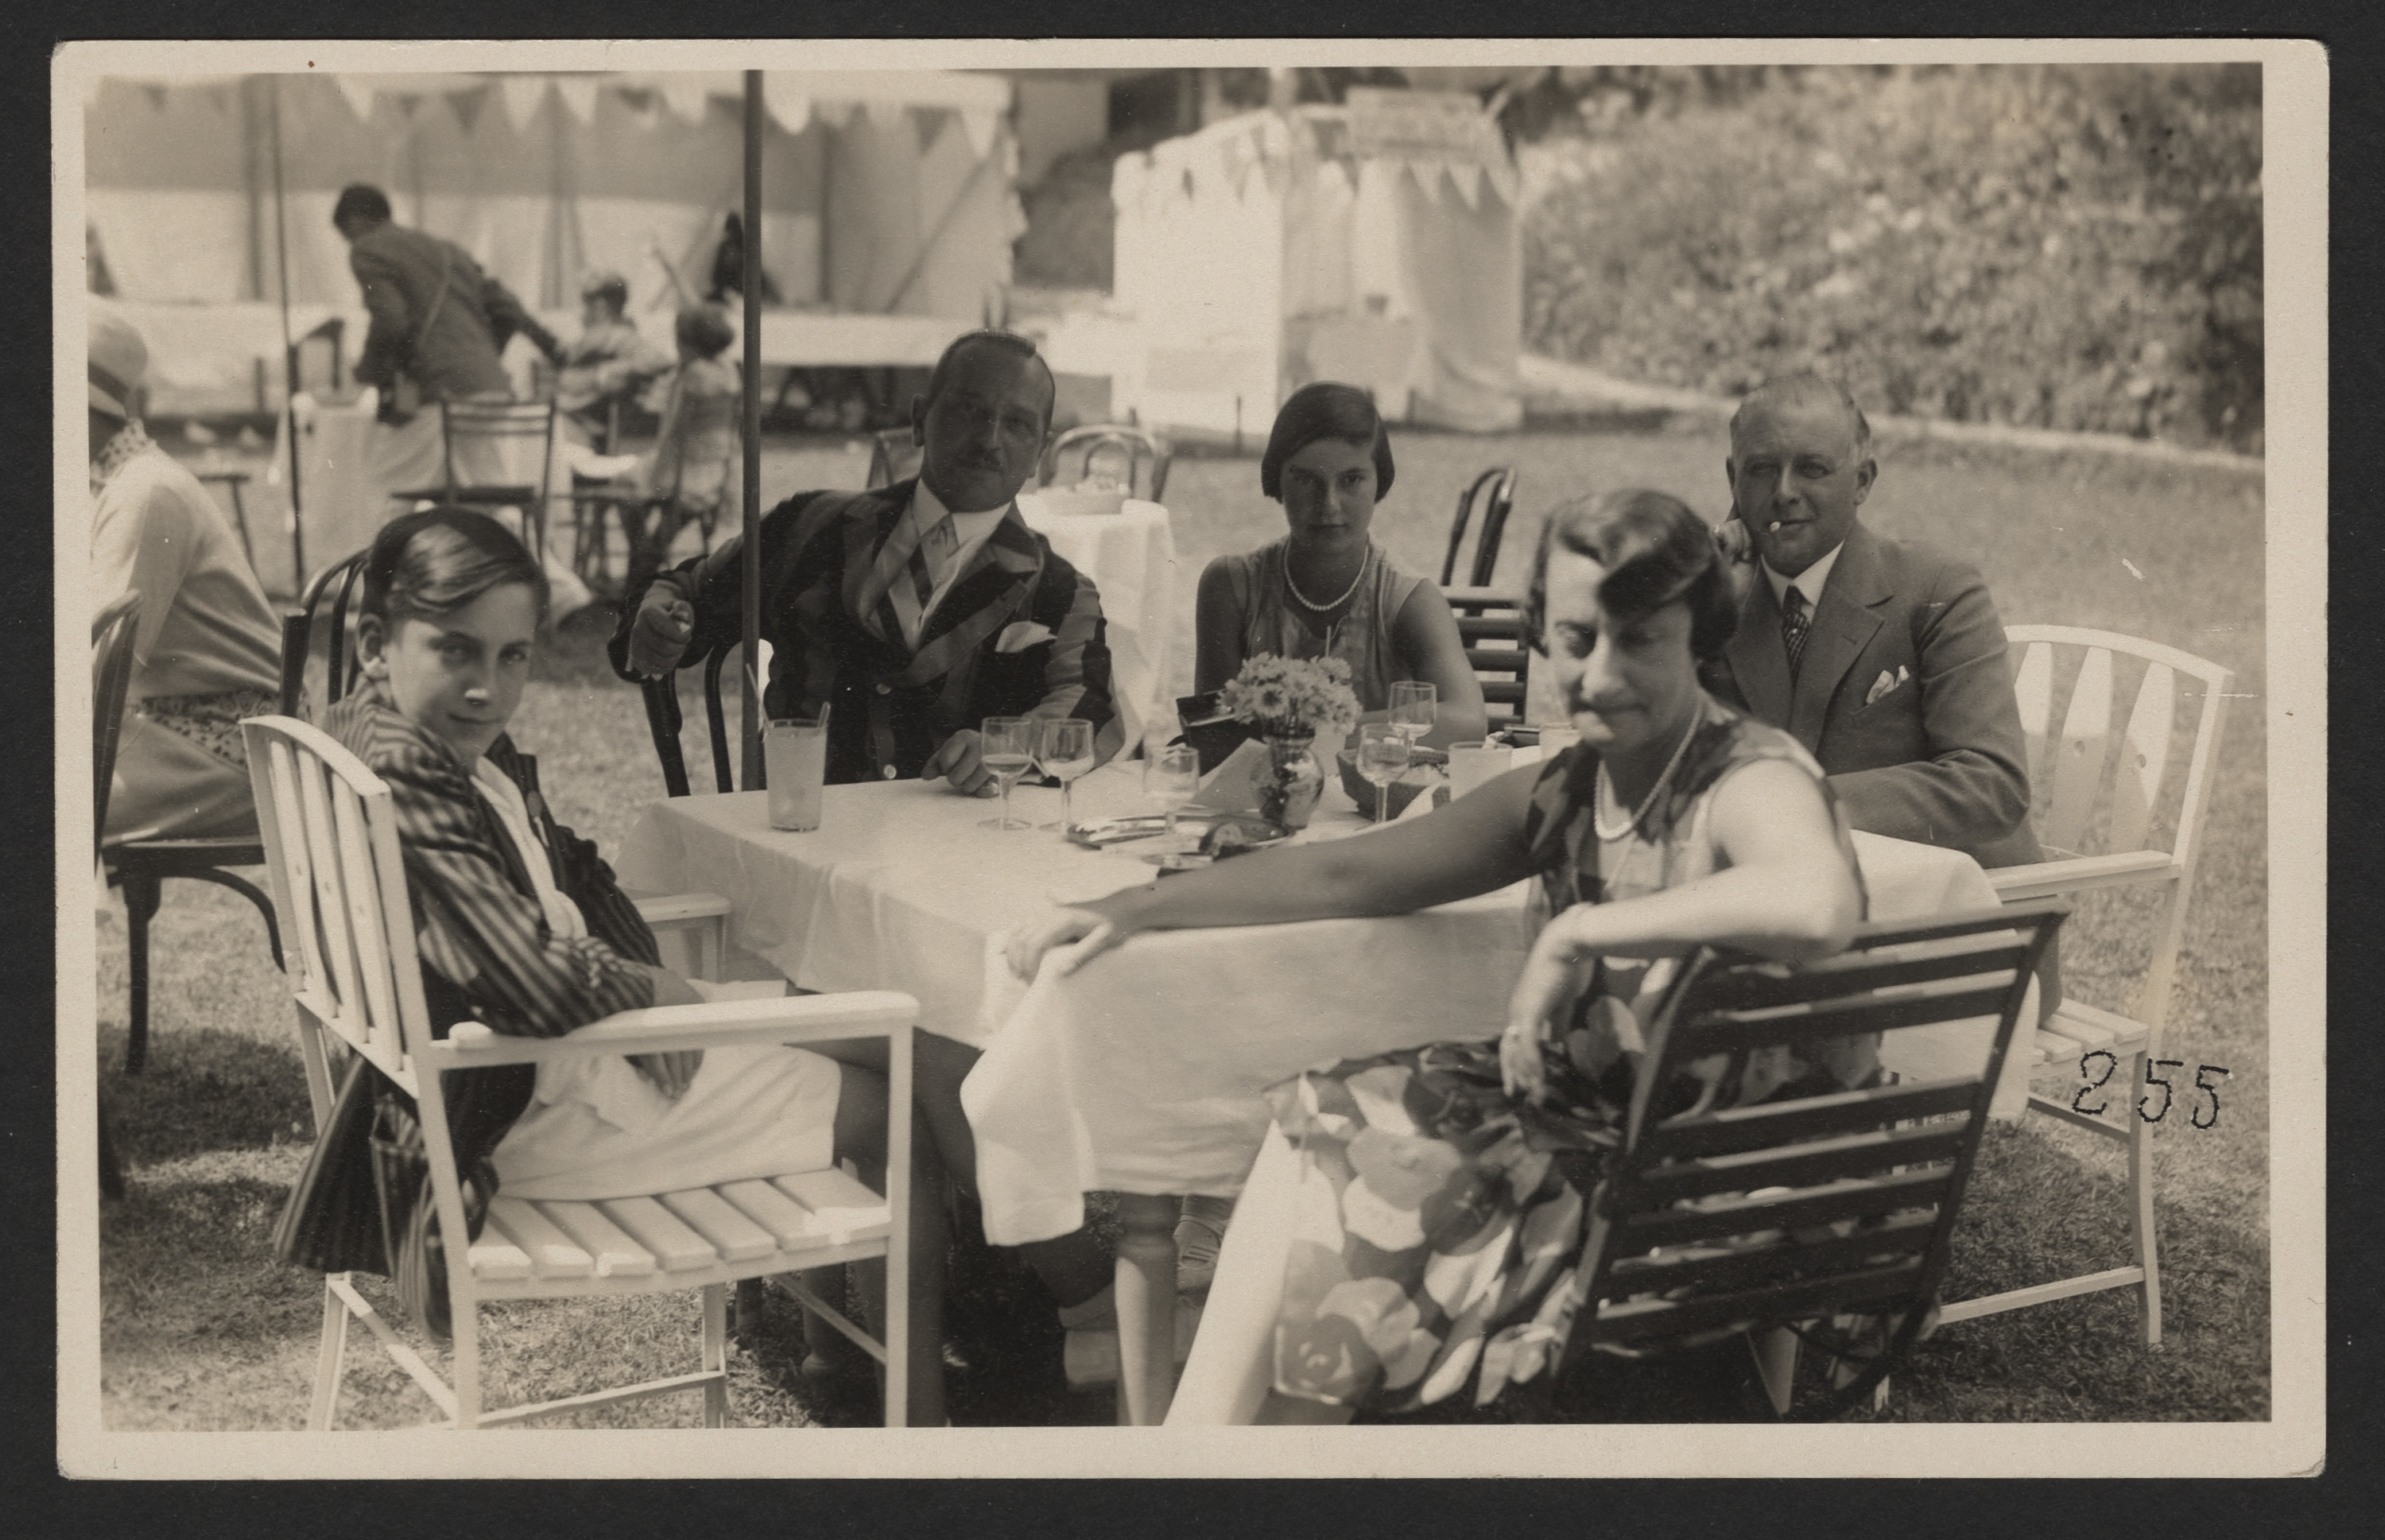 The Levi family sits around an outdoor dining table.   Among those pictured (left to right) are Walter, [unidentified], Margot, Nellie, and Max Levi.